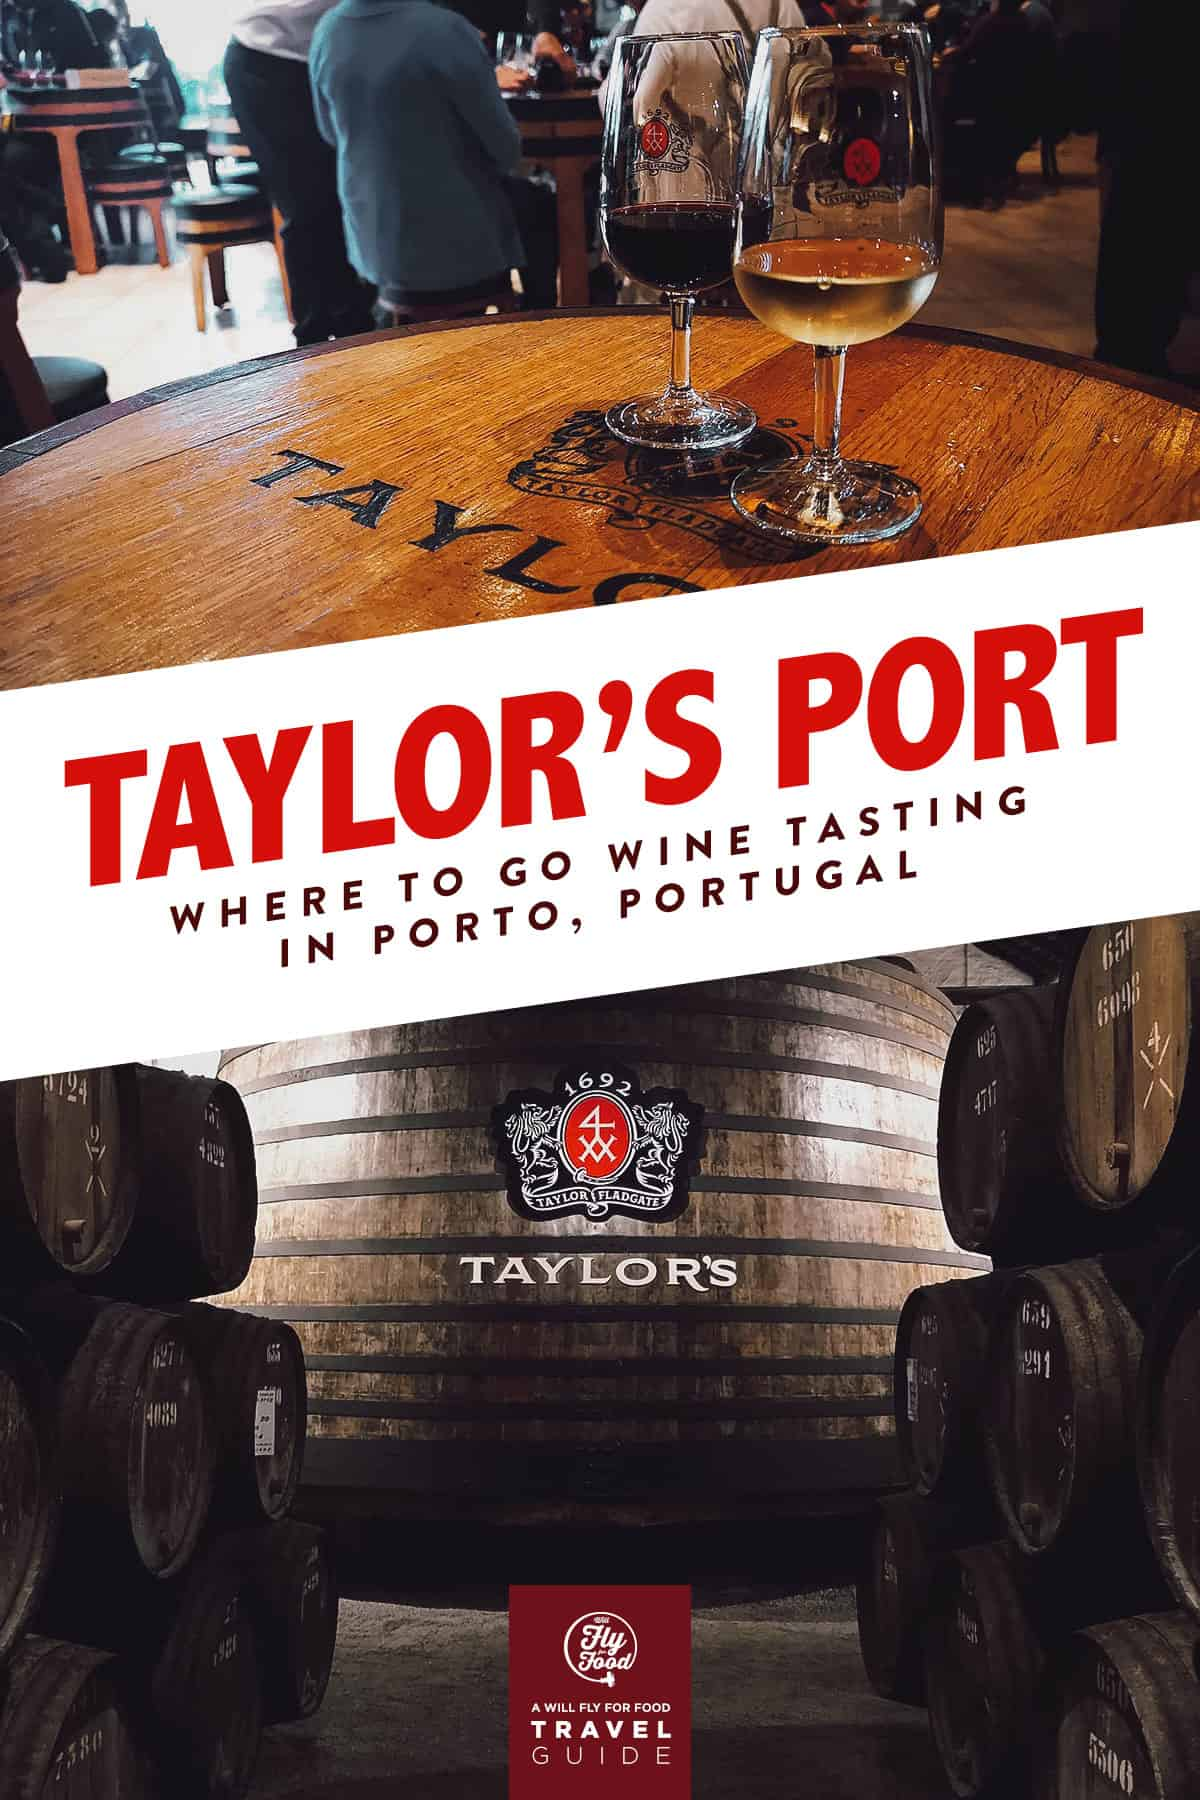 Taylor's Port Winery in Porto